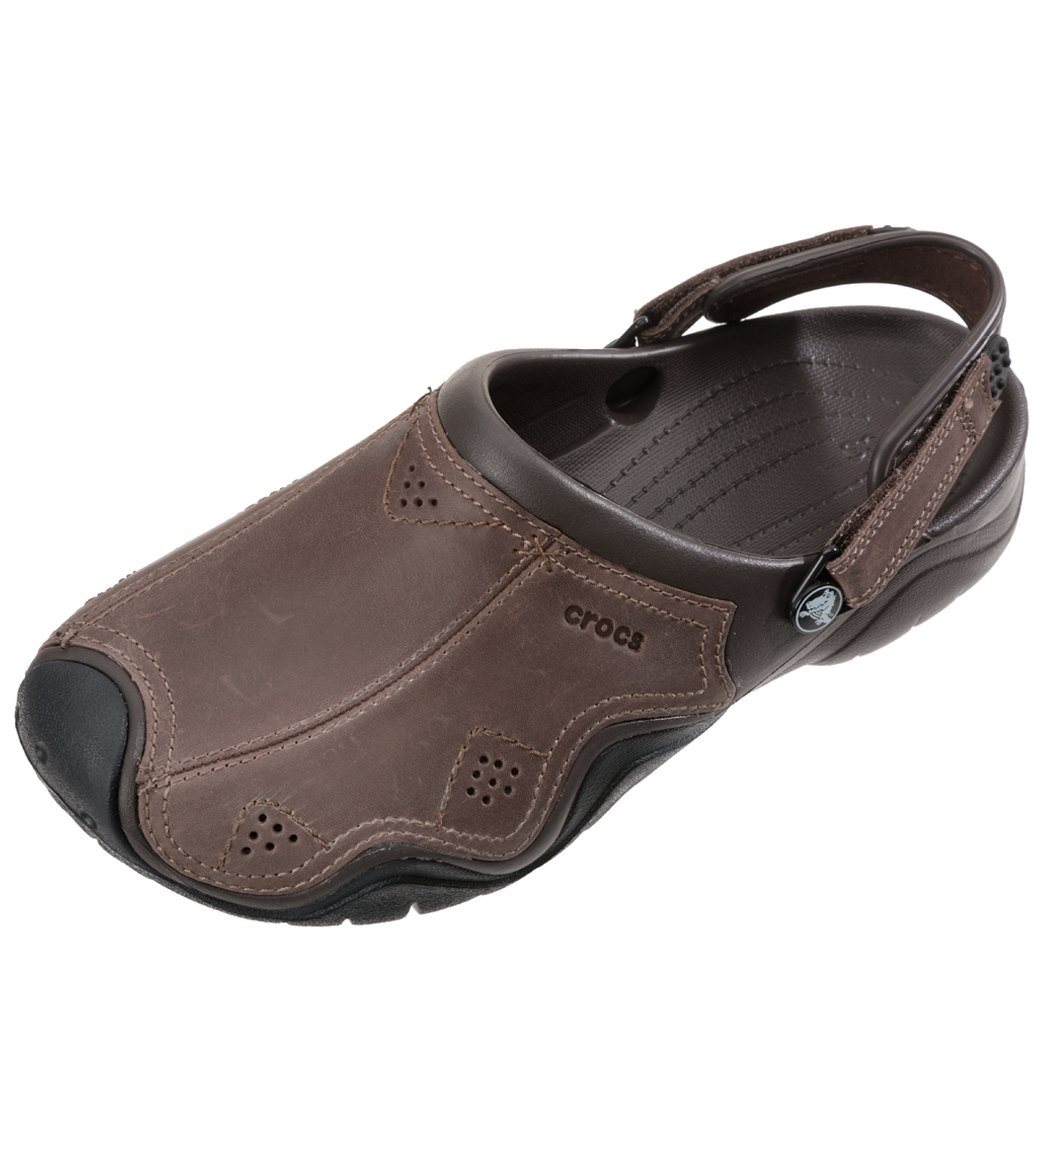 Men's Leather Men's Clog Crocs Swiftwater Clog Crocs Swiftwater Leather MpUSzV